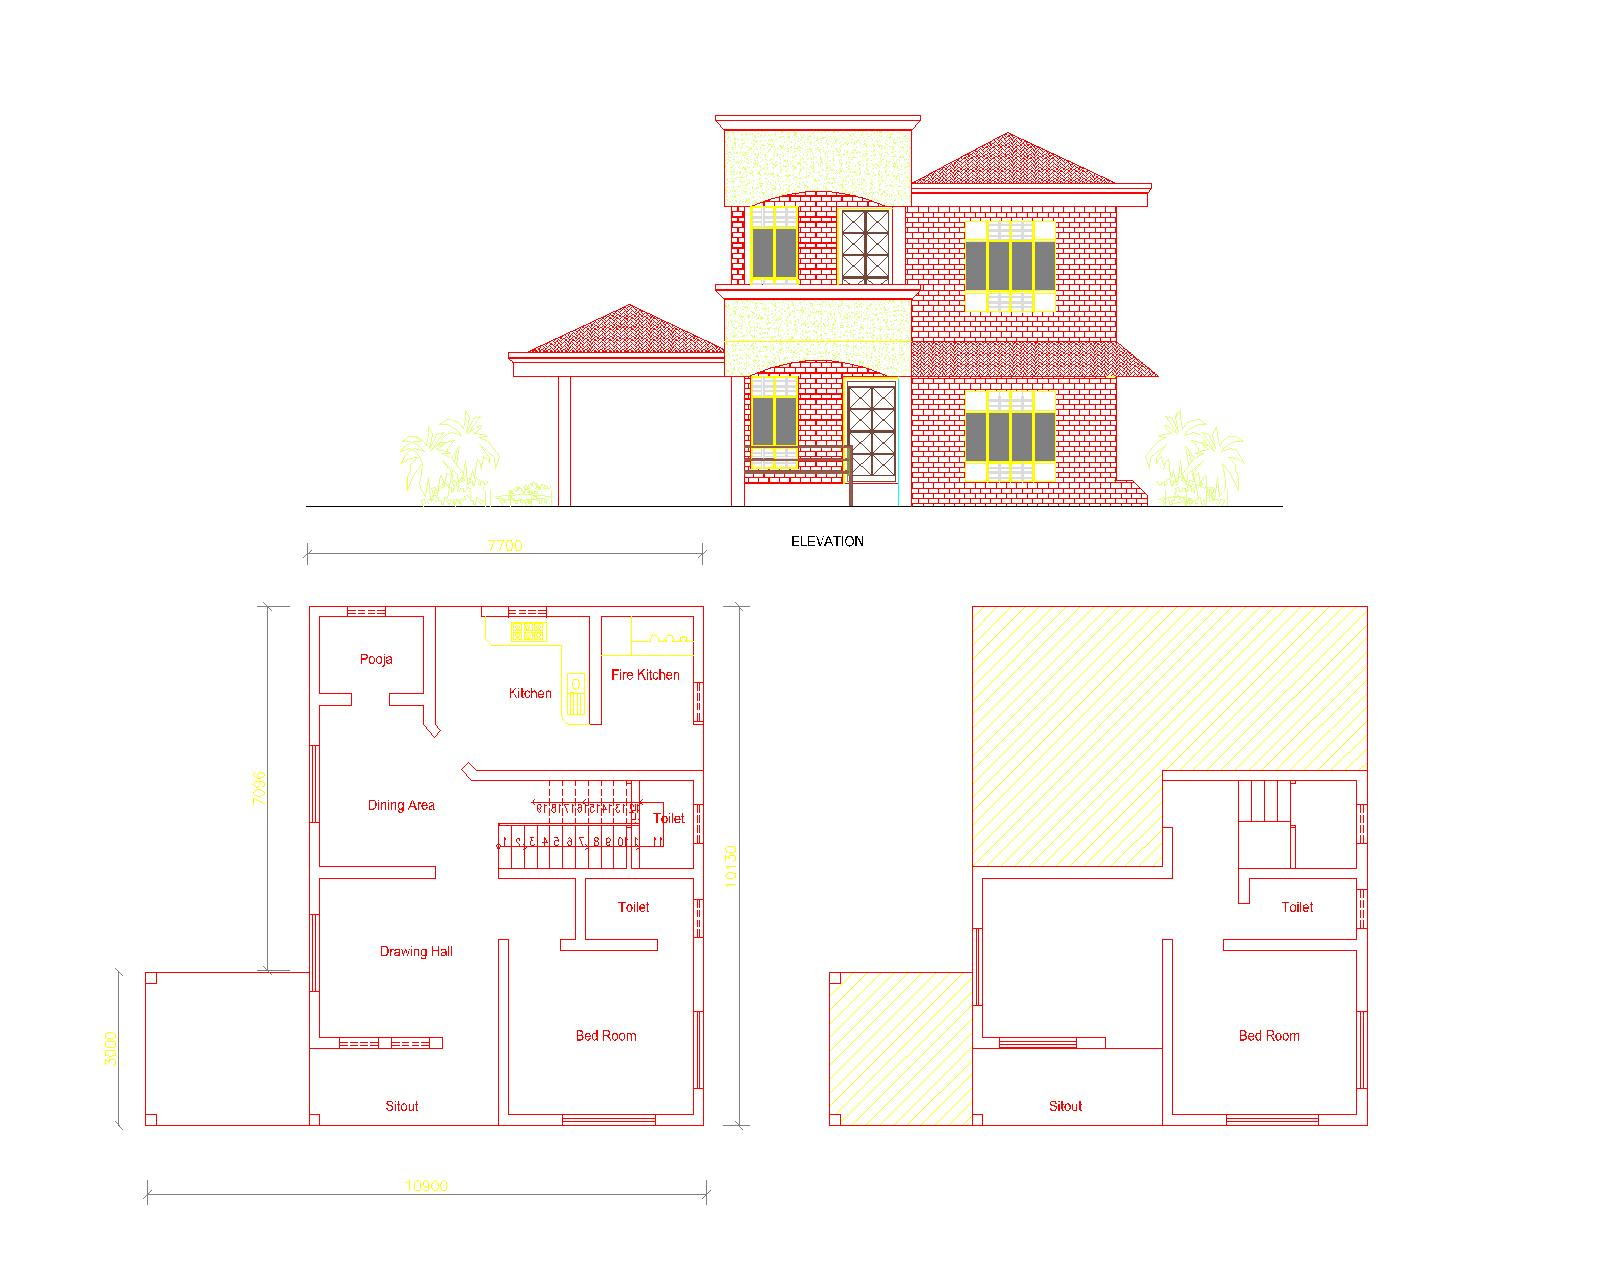 Veedu Plans http://keralastylehouseplan-enteveedu.blogspot.com/2012_01_01_archive.html